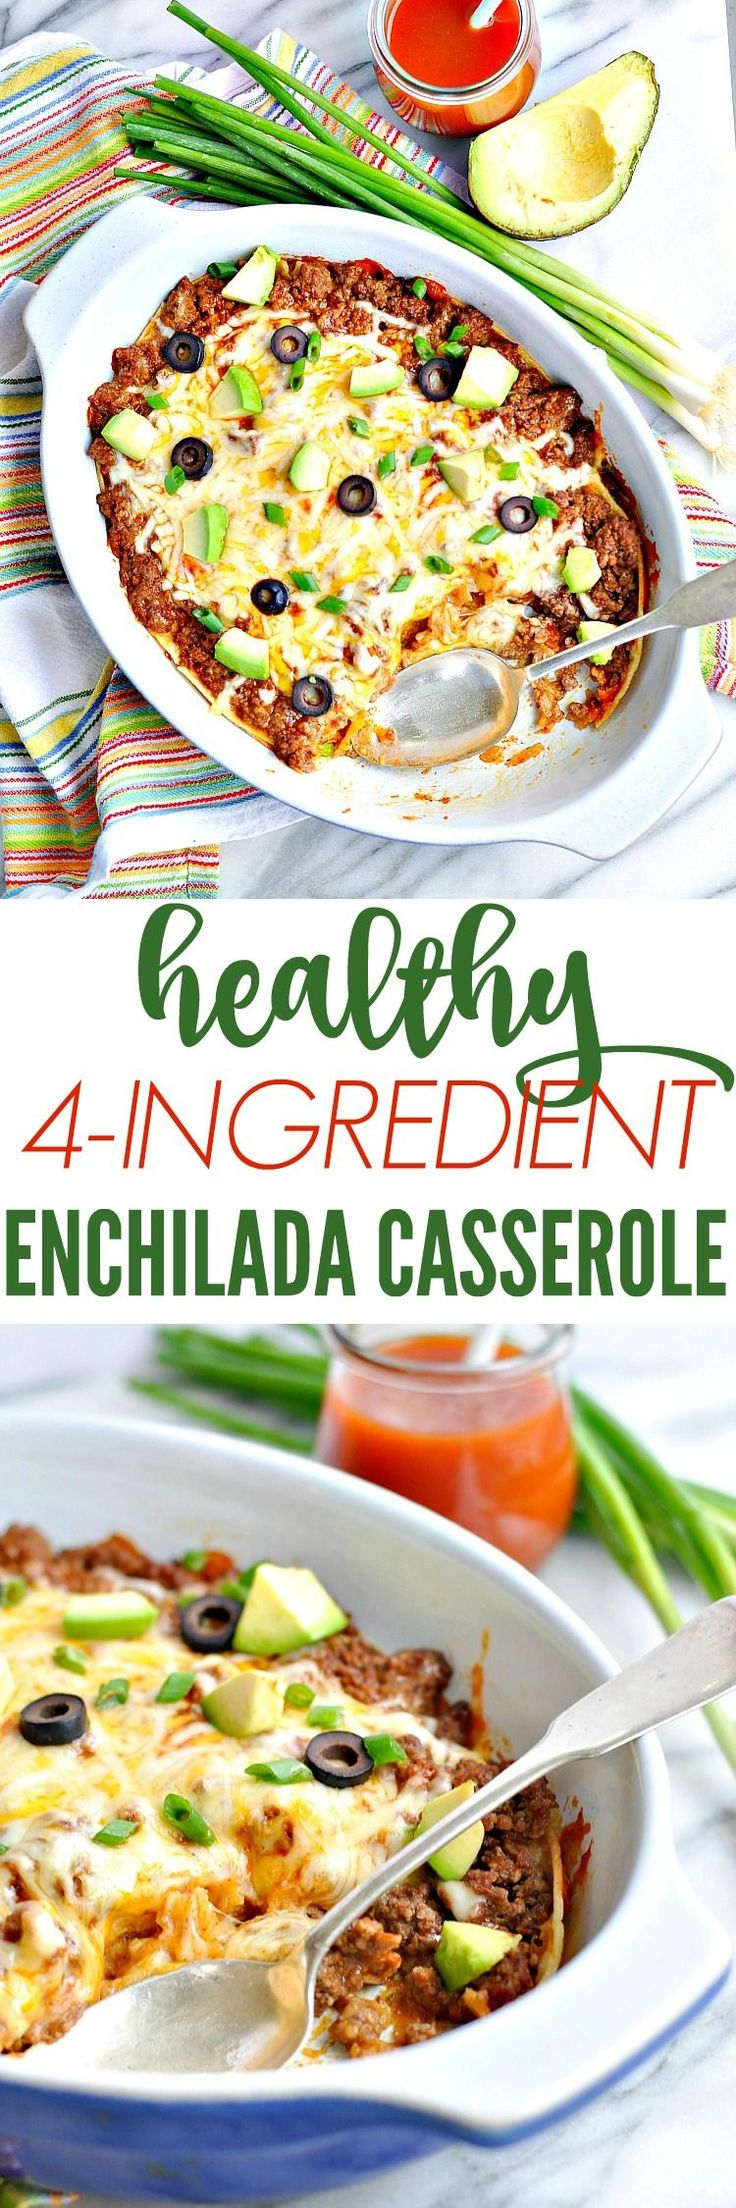 This Healthy 4-Ingredient Enchilada Casserole is a quick, easy, and family-friendly dinner recipe that's perfect for busy weeknights!